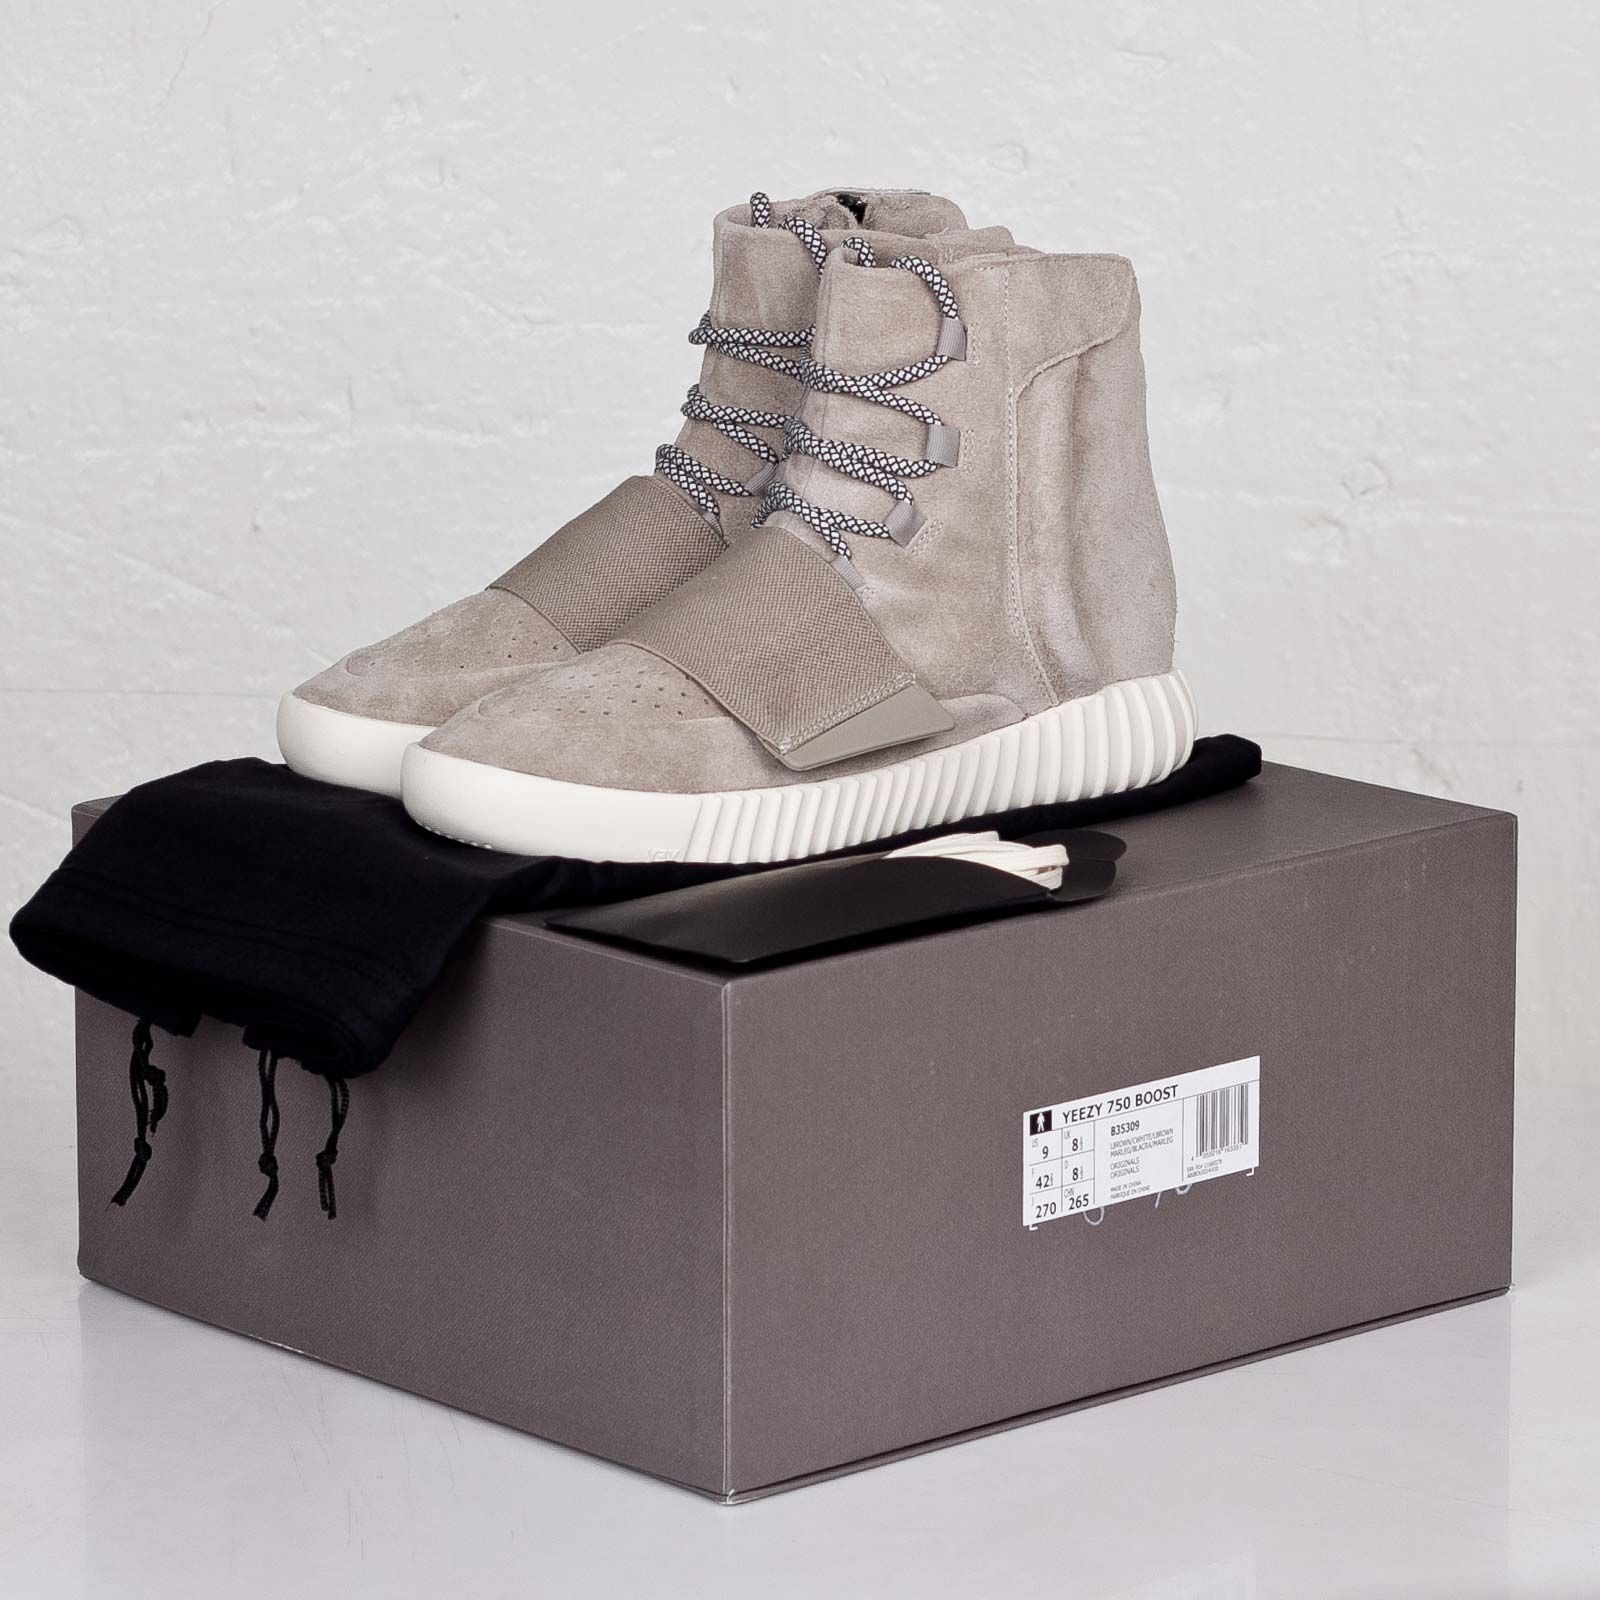 new style 7b7e9 01fe2 adidas Yeezy 750 Boost …